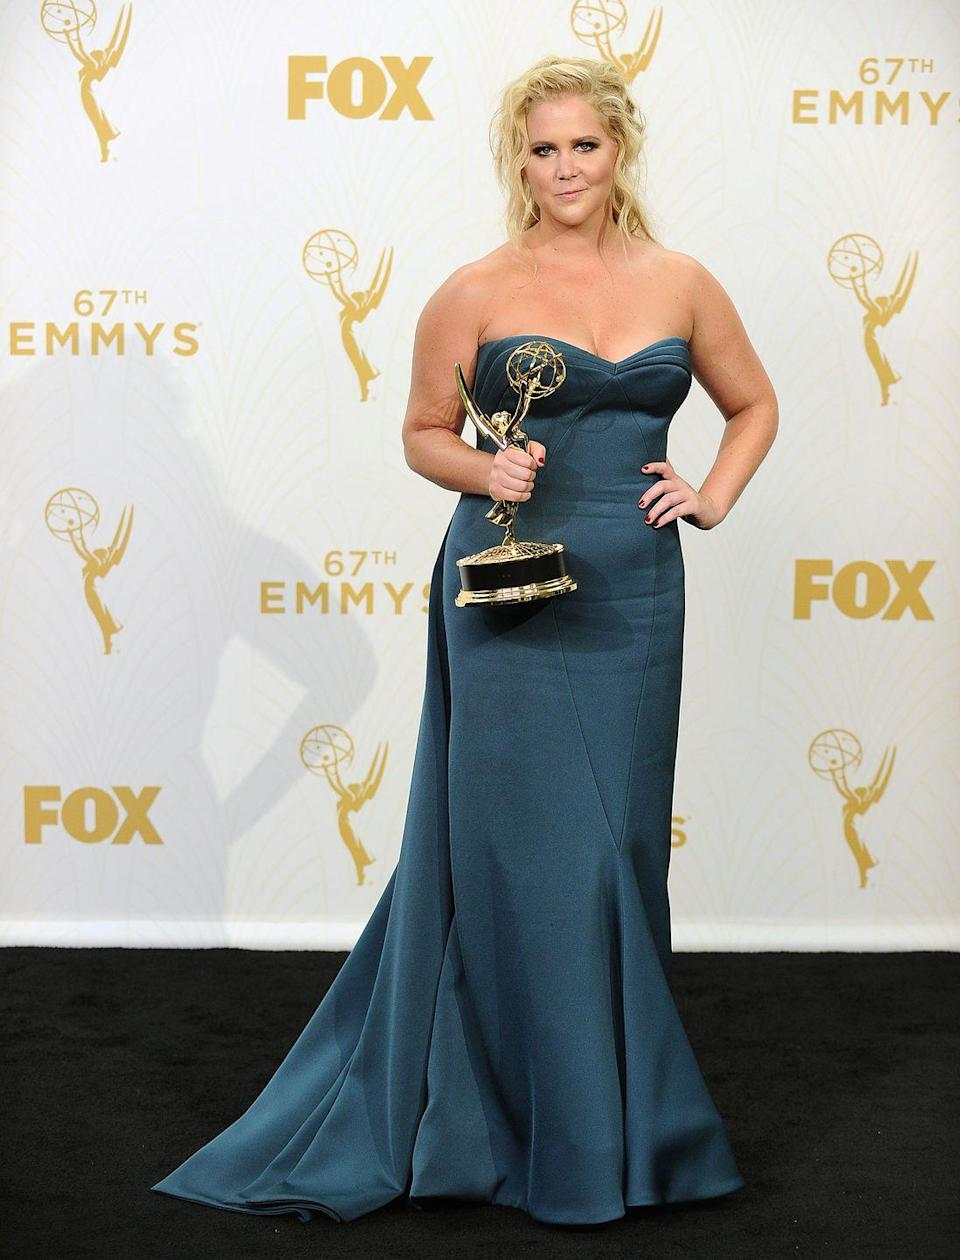 """<p>Schumer wore this dark teal dress when she won an Emmy in 2015 for Outstanding Variety Sketch Series for <em>Inside Amy Schumer</em><span class=""""redactor-invisible-space"""">.</span></p>"""